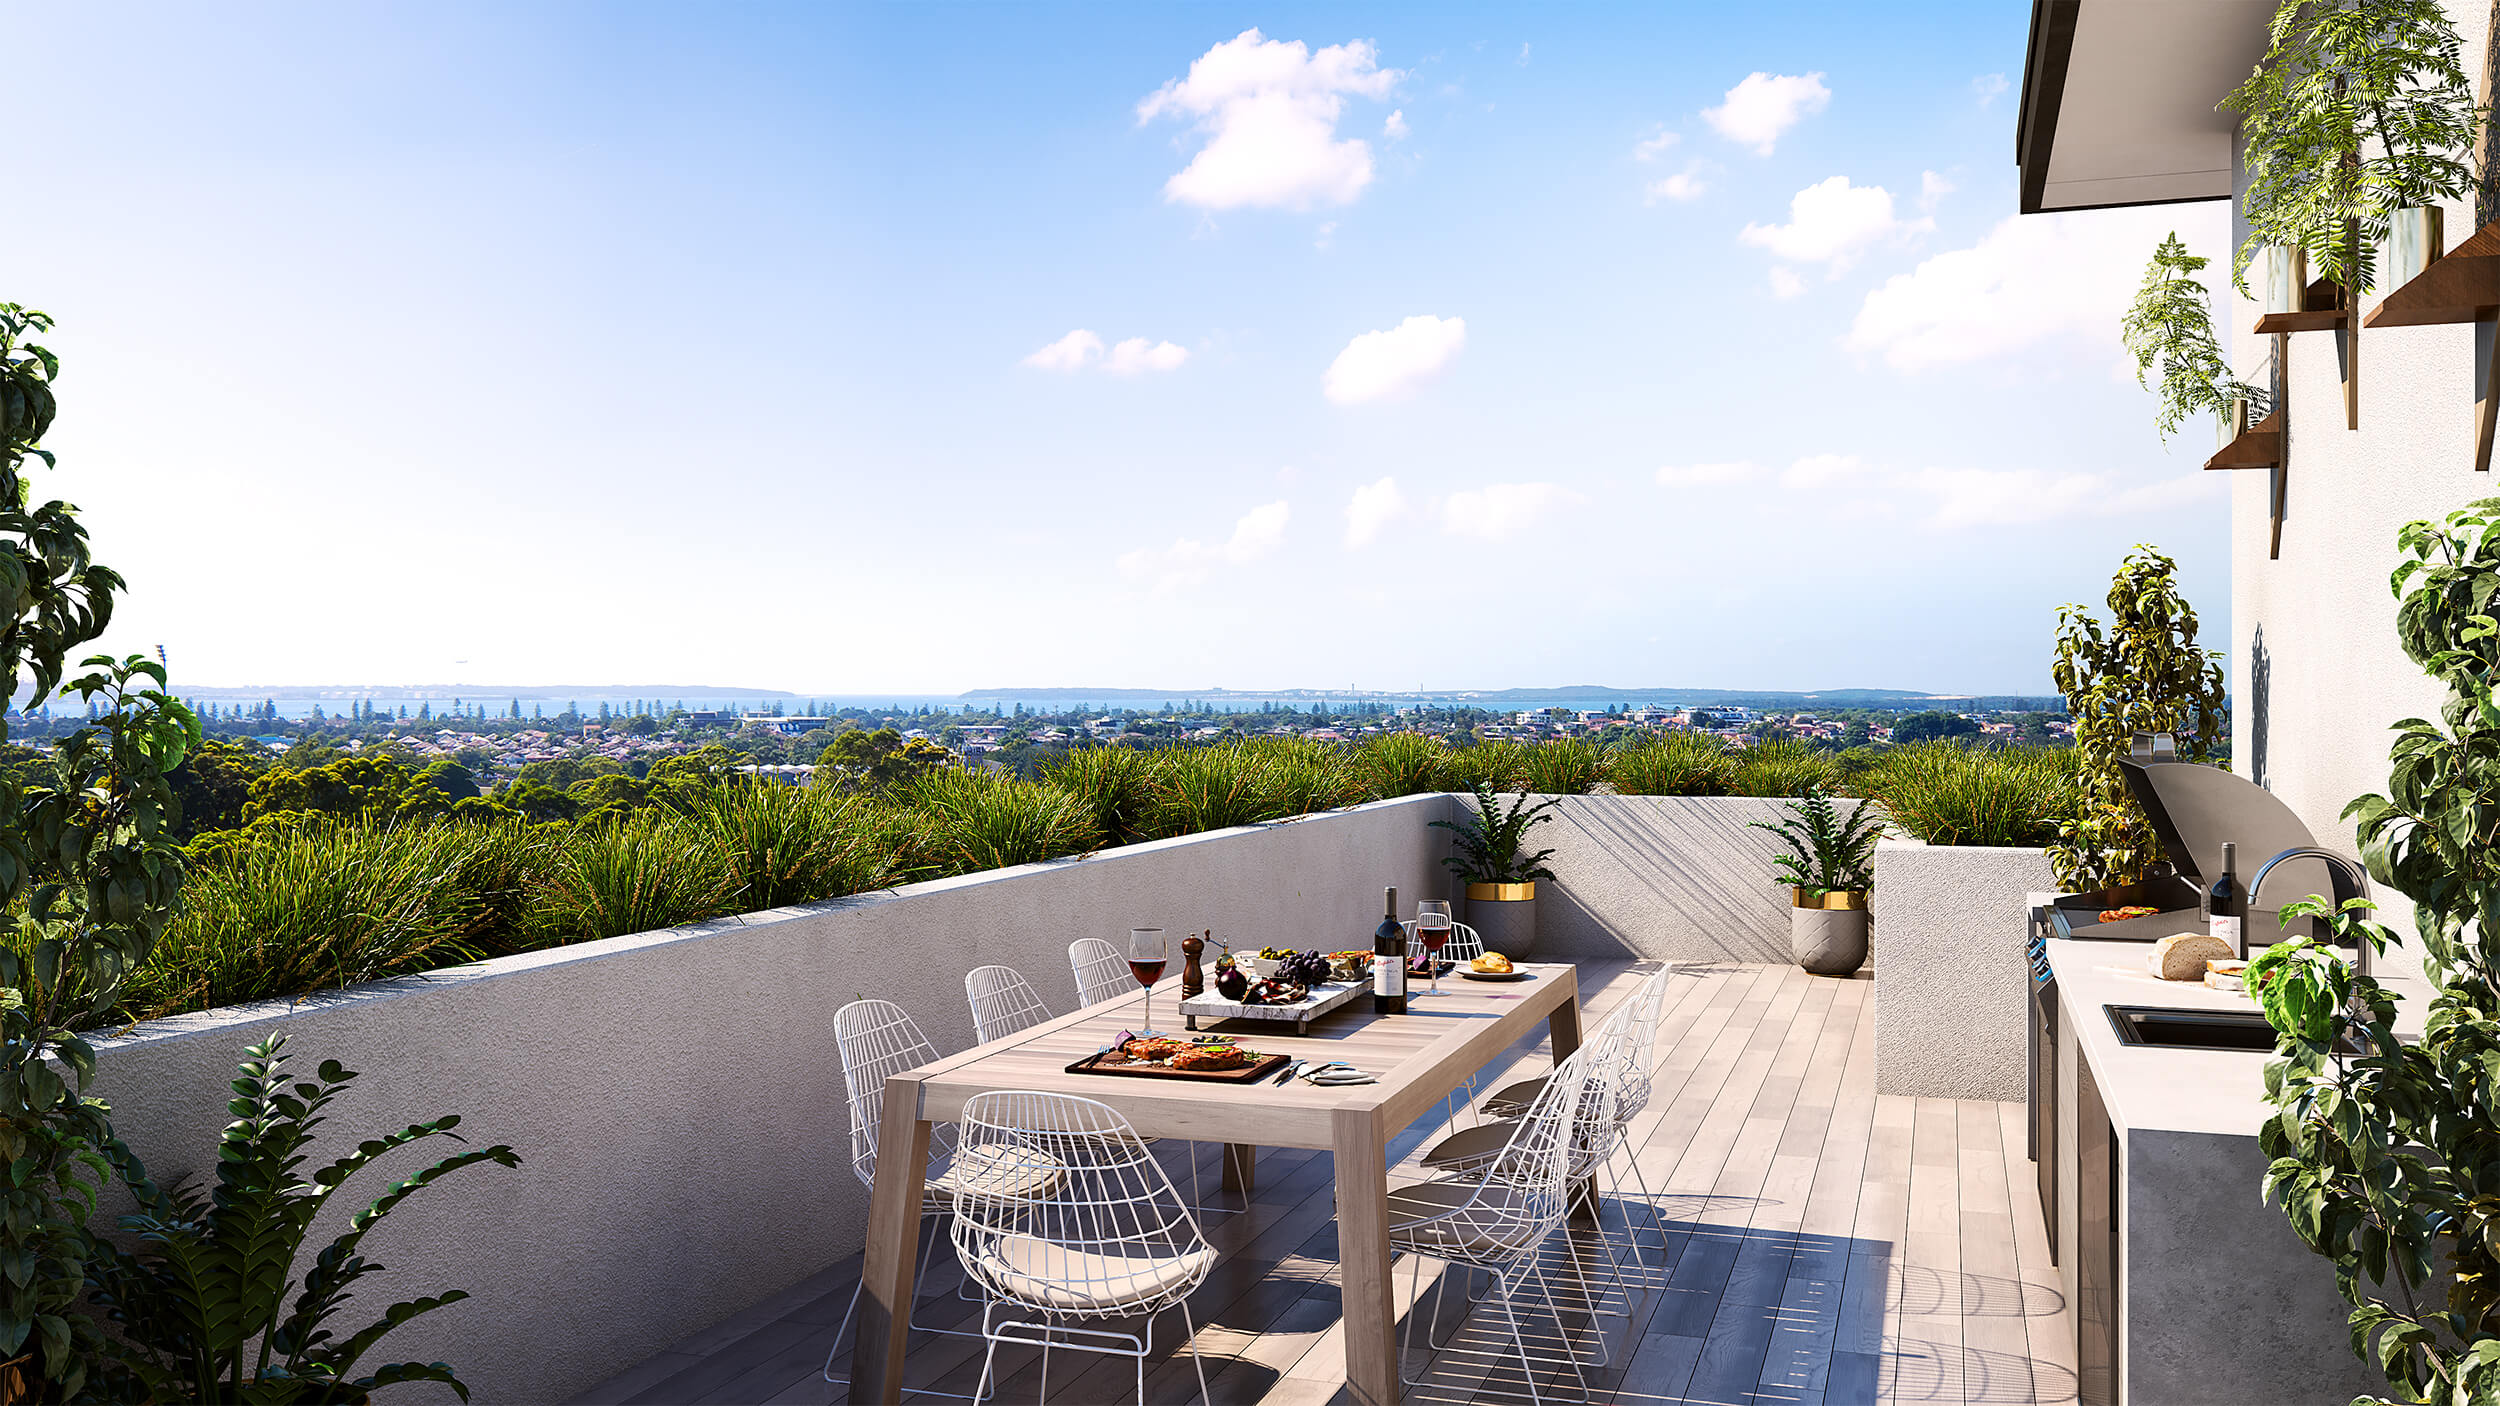 Image - Private Residents' Sky Terrace.jpg